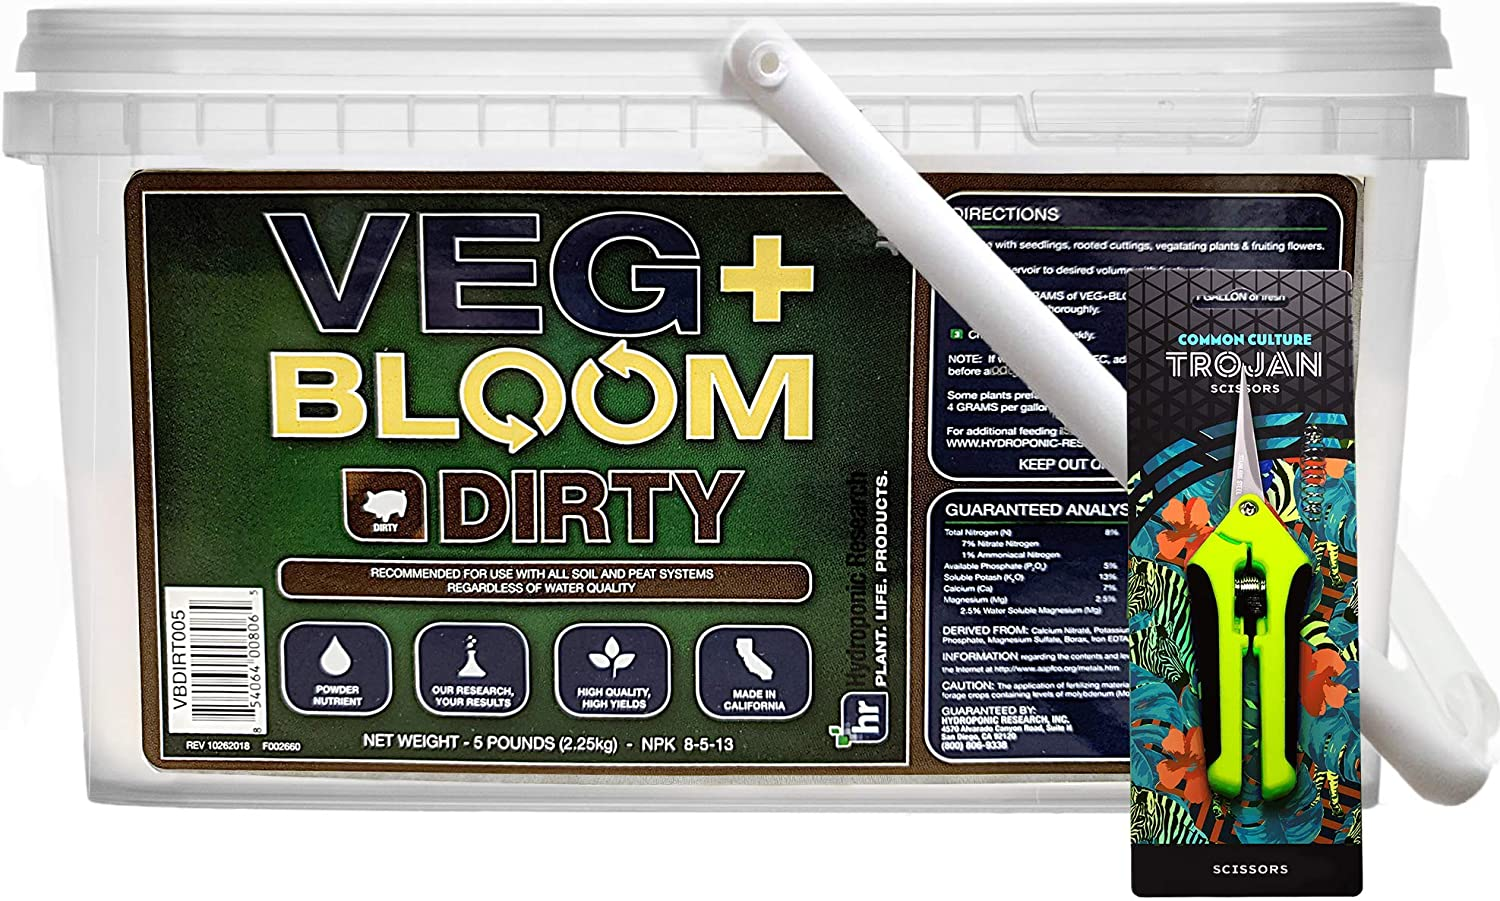 Veg+ Bloom Dirty Formulated Nutrient Powder for Soil and Peat -5lb with Common Culture Trimming Scissors